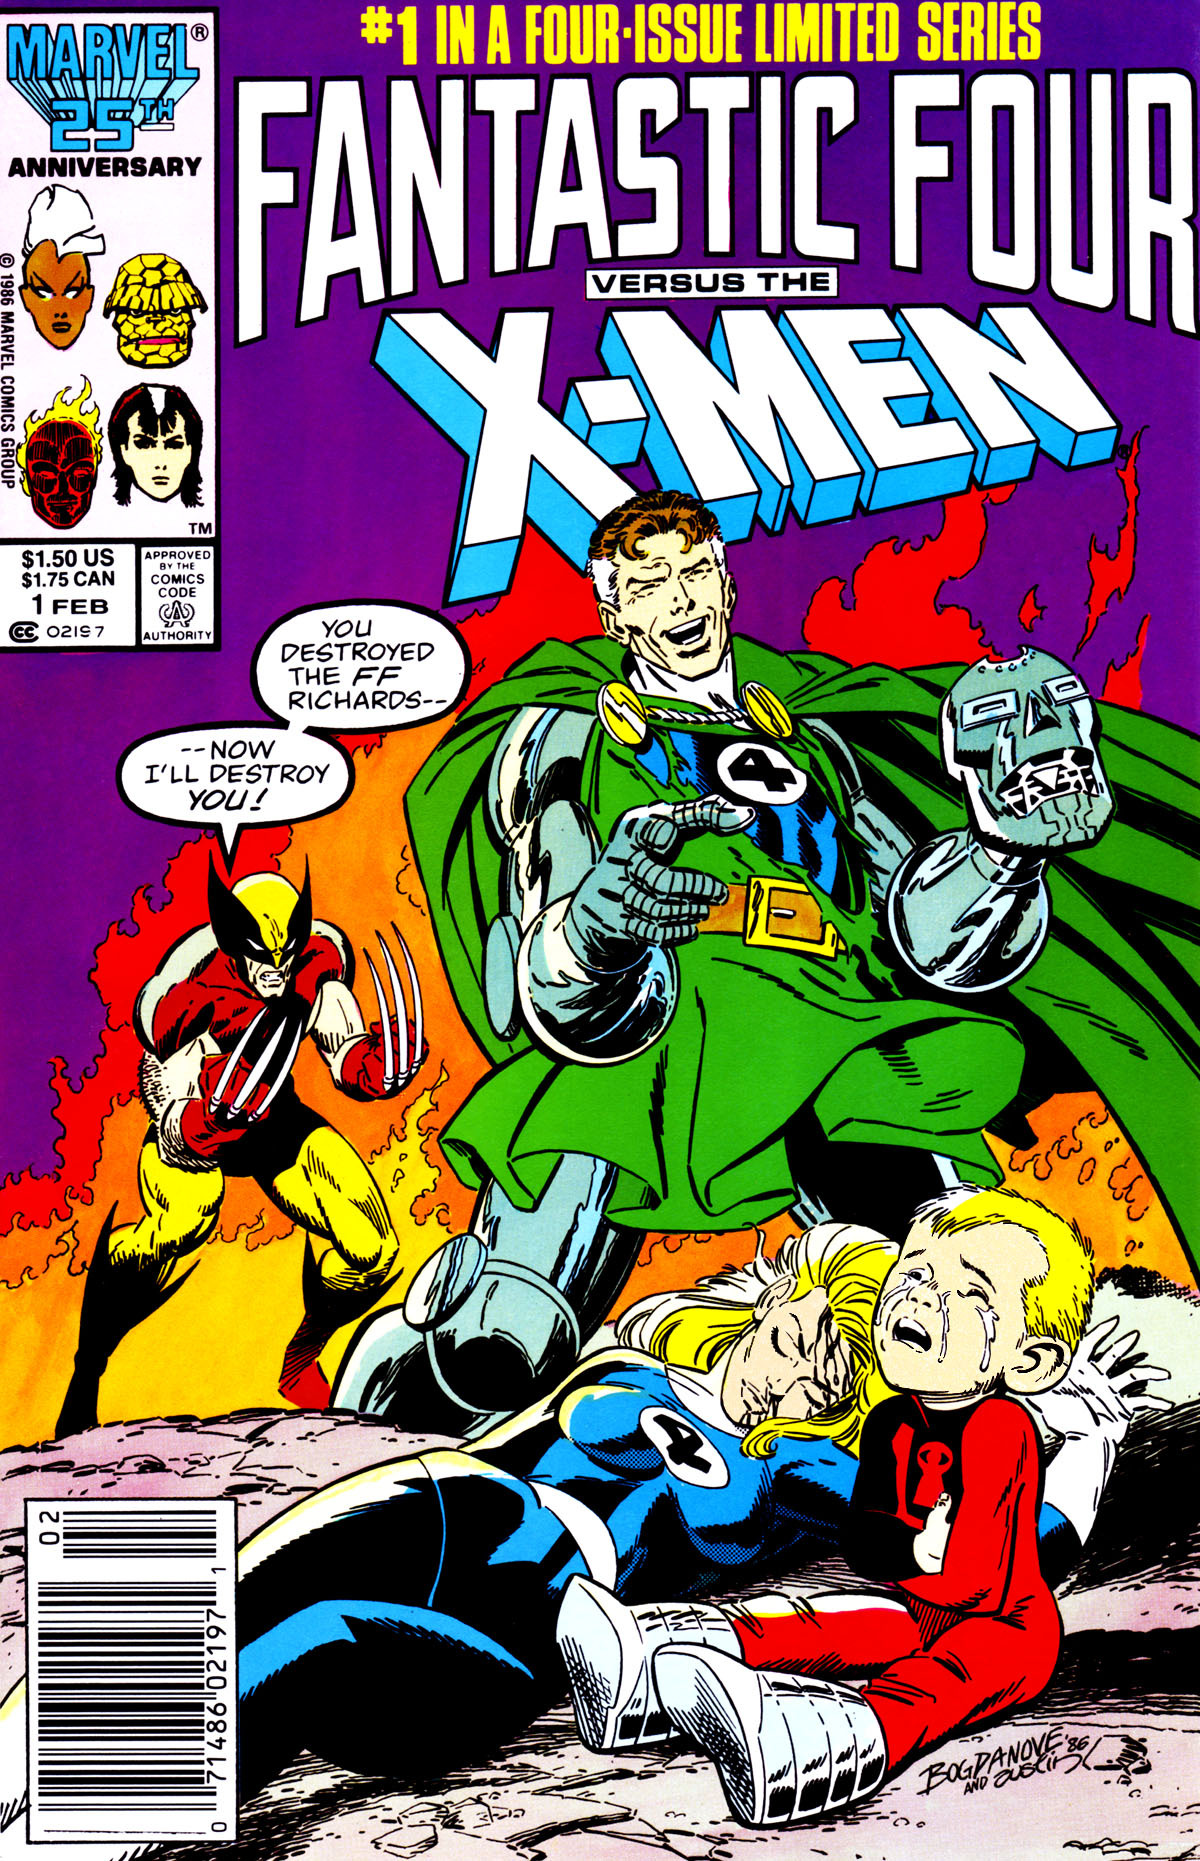 comicbookcovers:  Fantastic Four Vs. The X-Men #1, February 1987, cover by Jon Bogdanove and Terry Austin  This was one of my favorite covers!